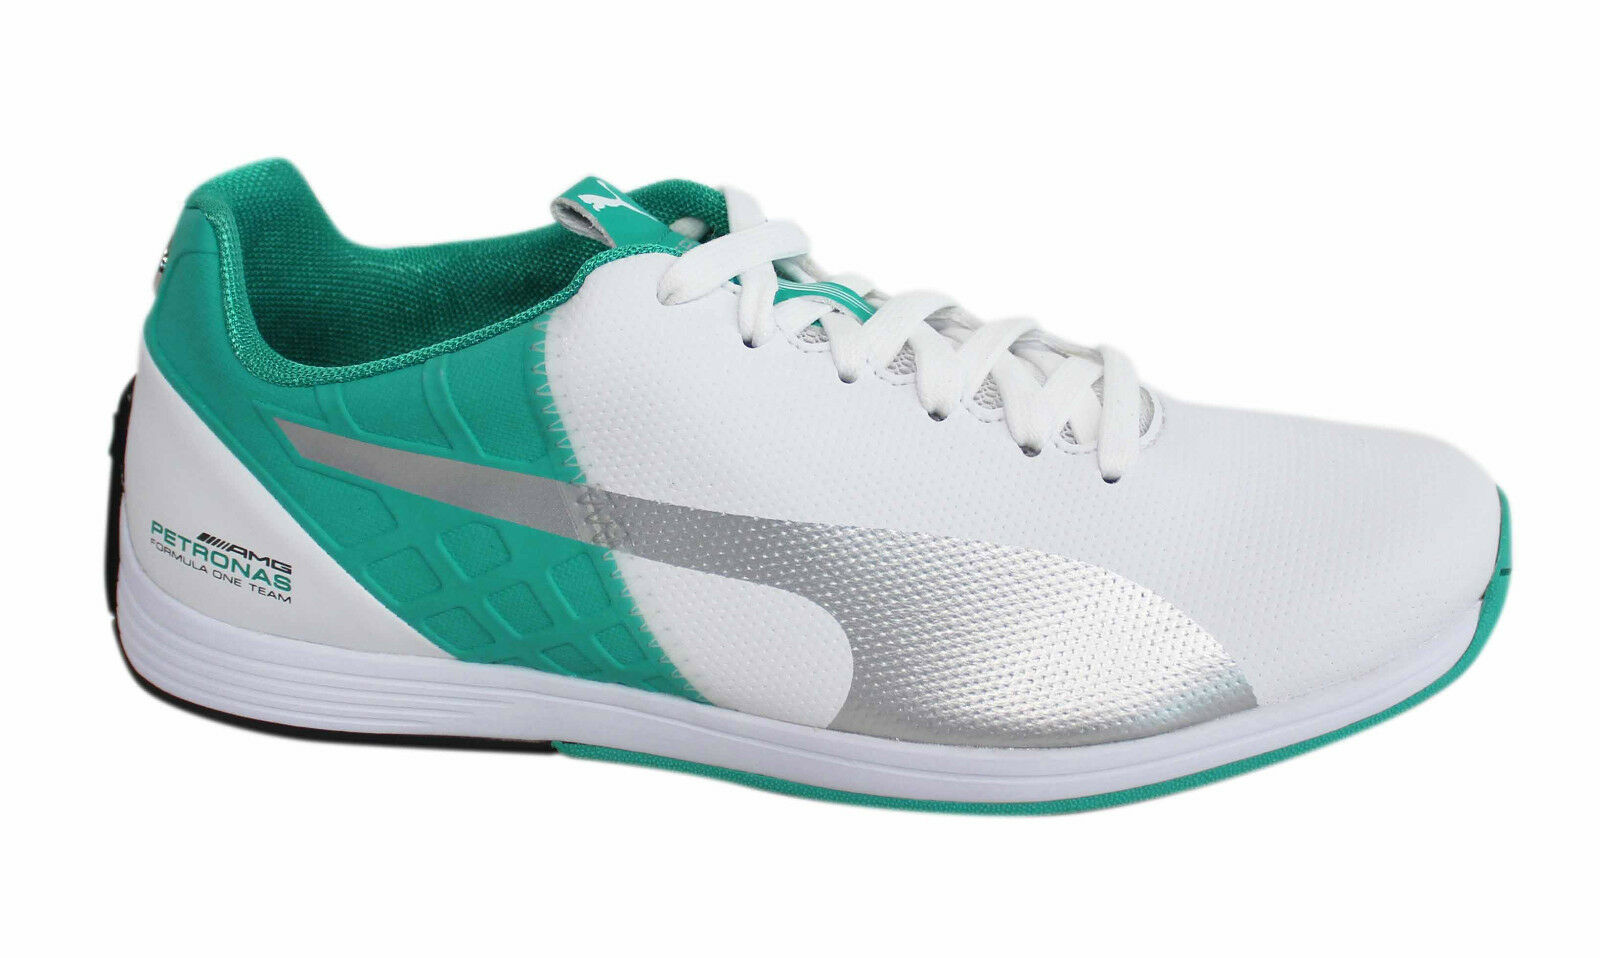 Puma MAMGP Mercedes AMG Petronus evo SPEED Lace Up Mens Trainers 305492 02 M2